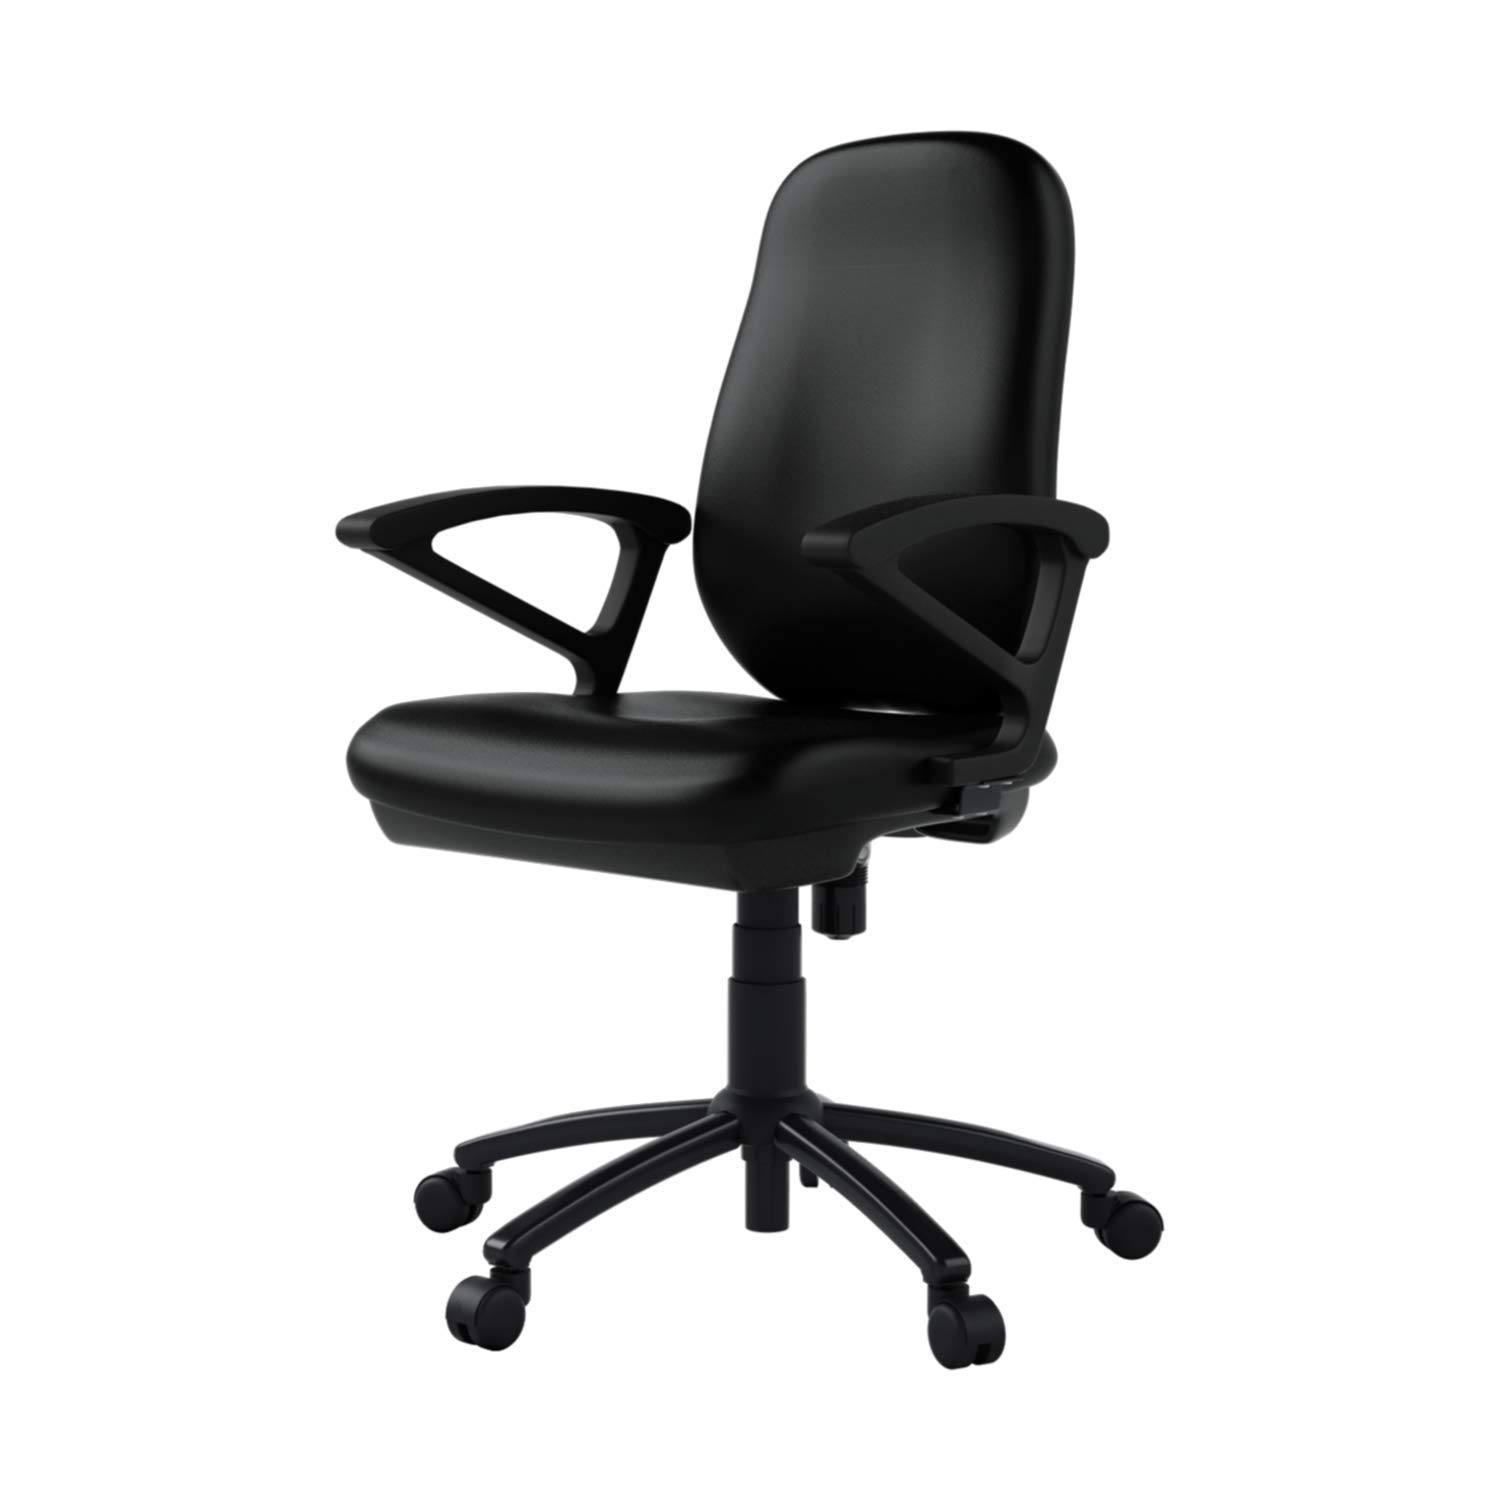 Top 3 Best Godrej Office Chair